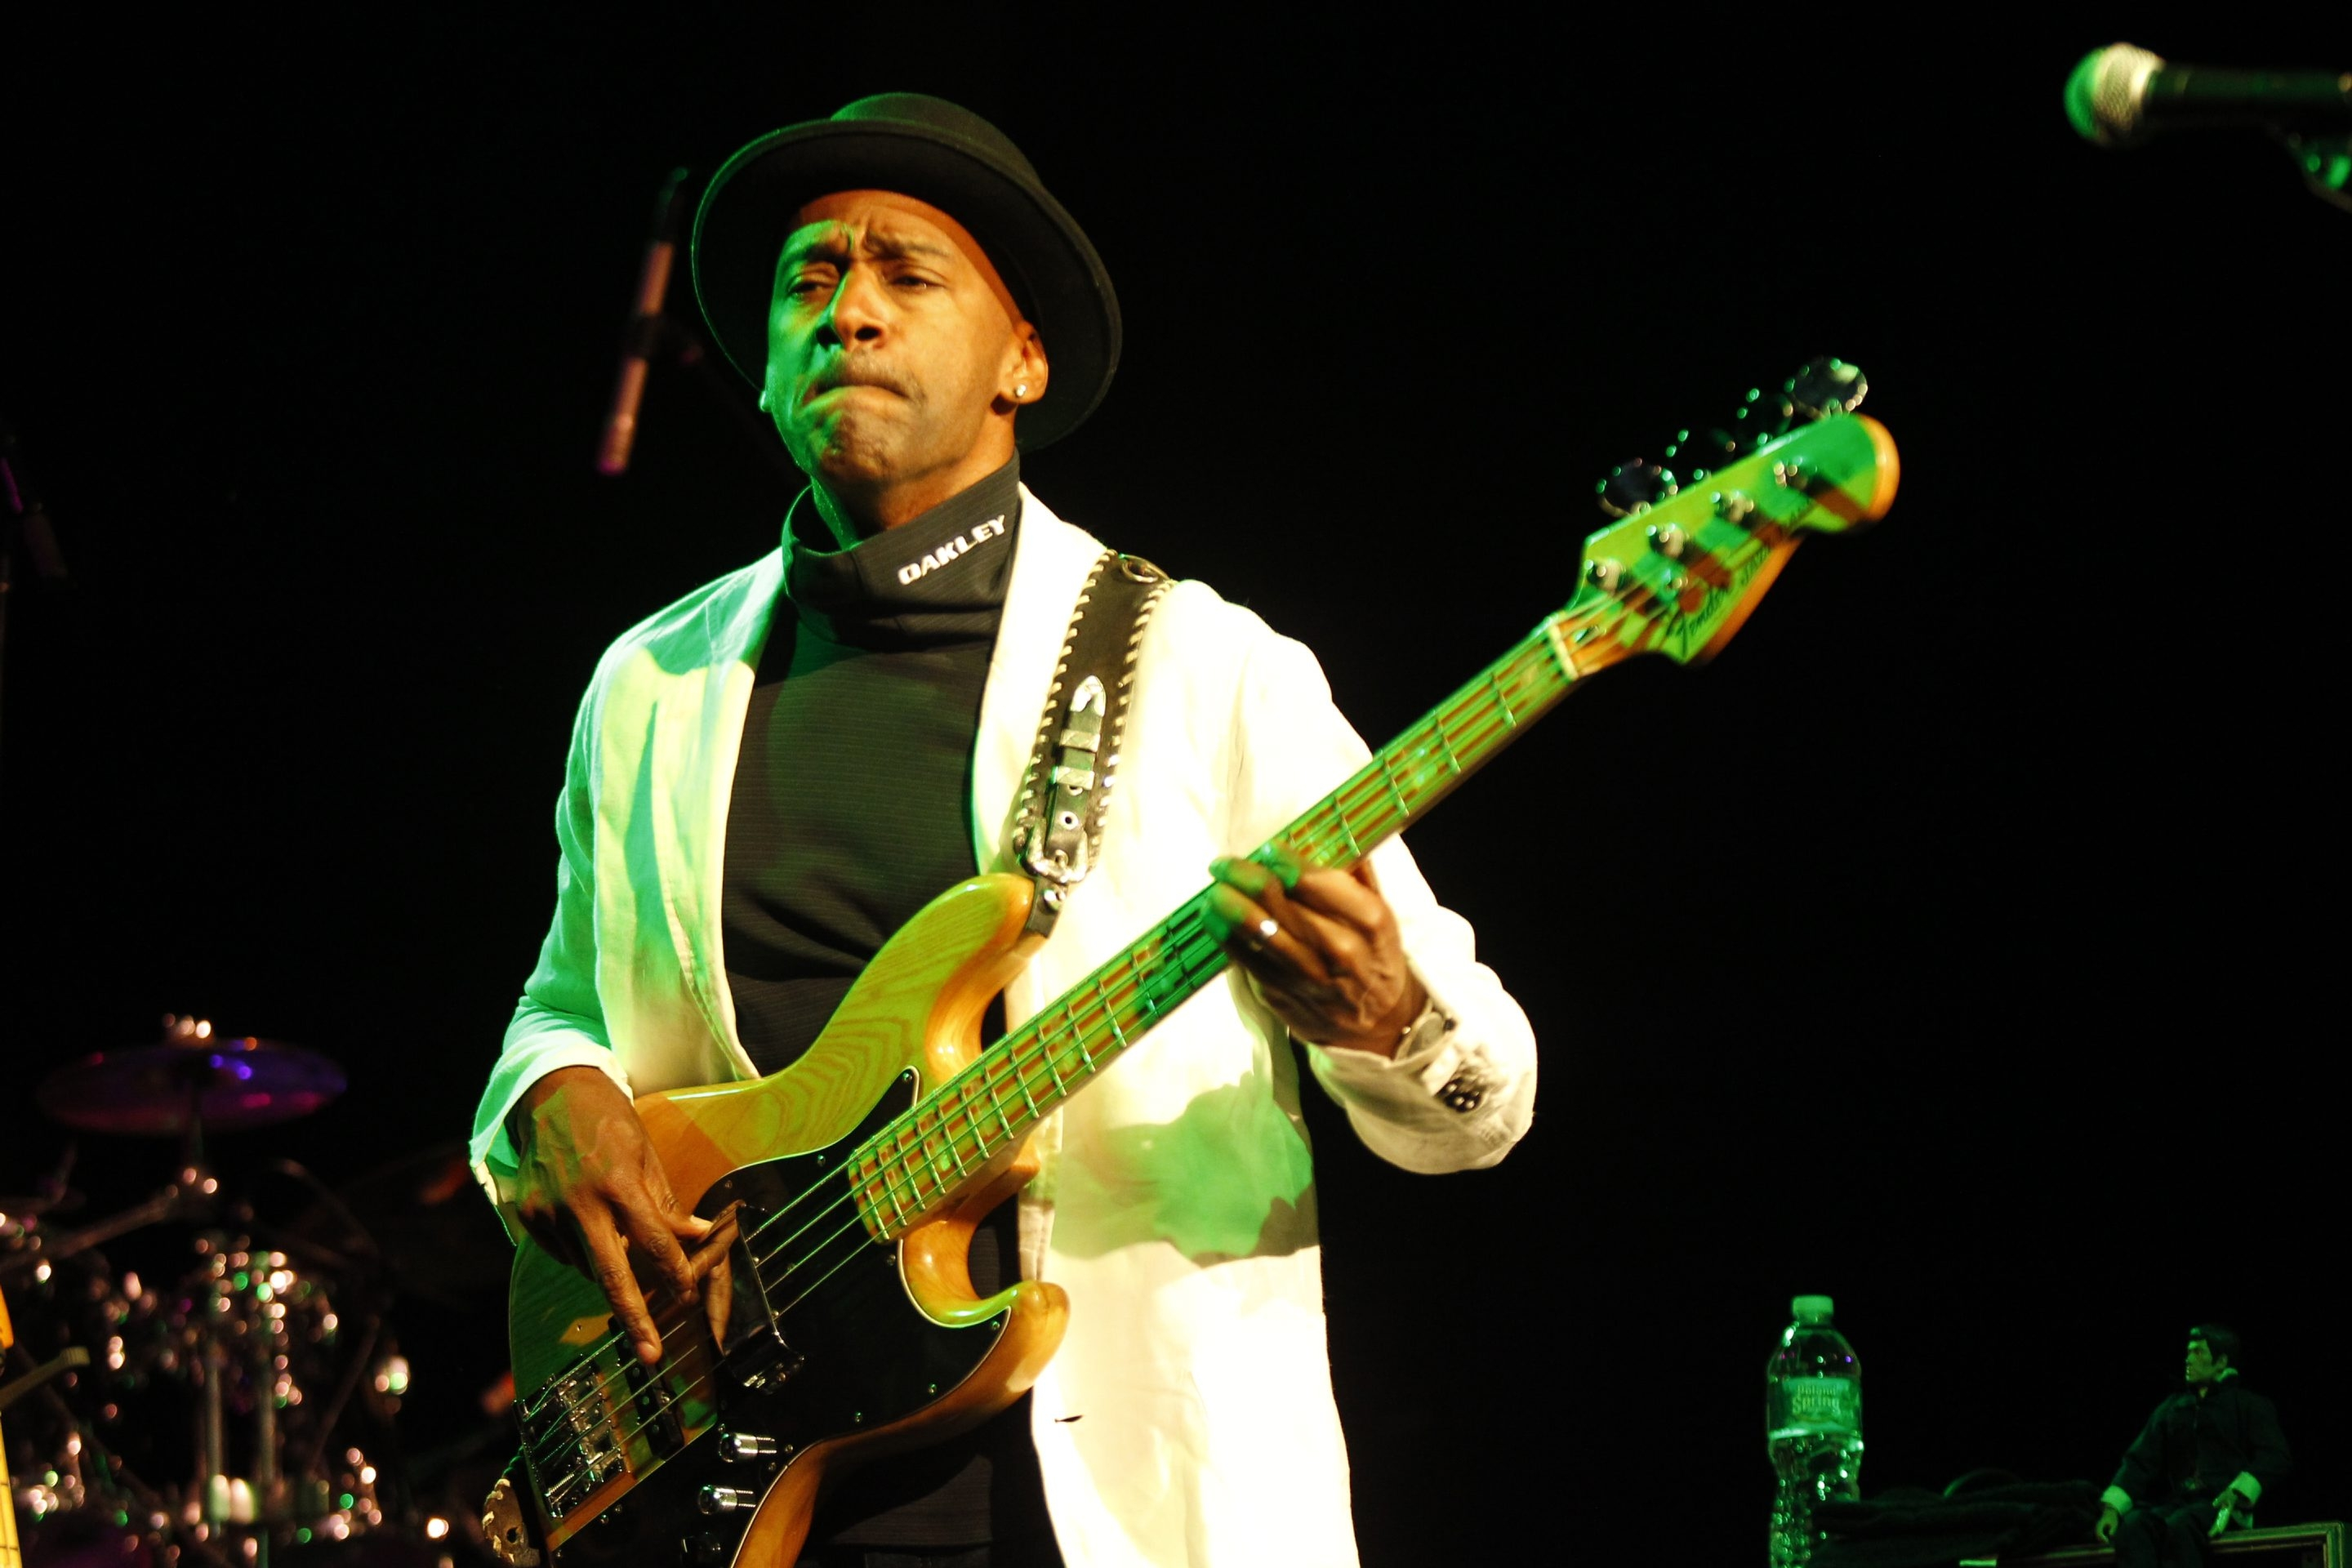 Marcus Miller plays bass while performing at the Bear's Den in the Seneca niagara Casino, on Friday, June 7, 2013.{Photo by Harry Scull Jr. / Buffalo News}